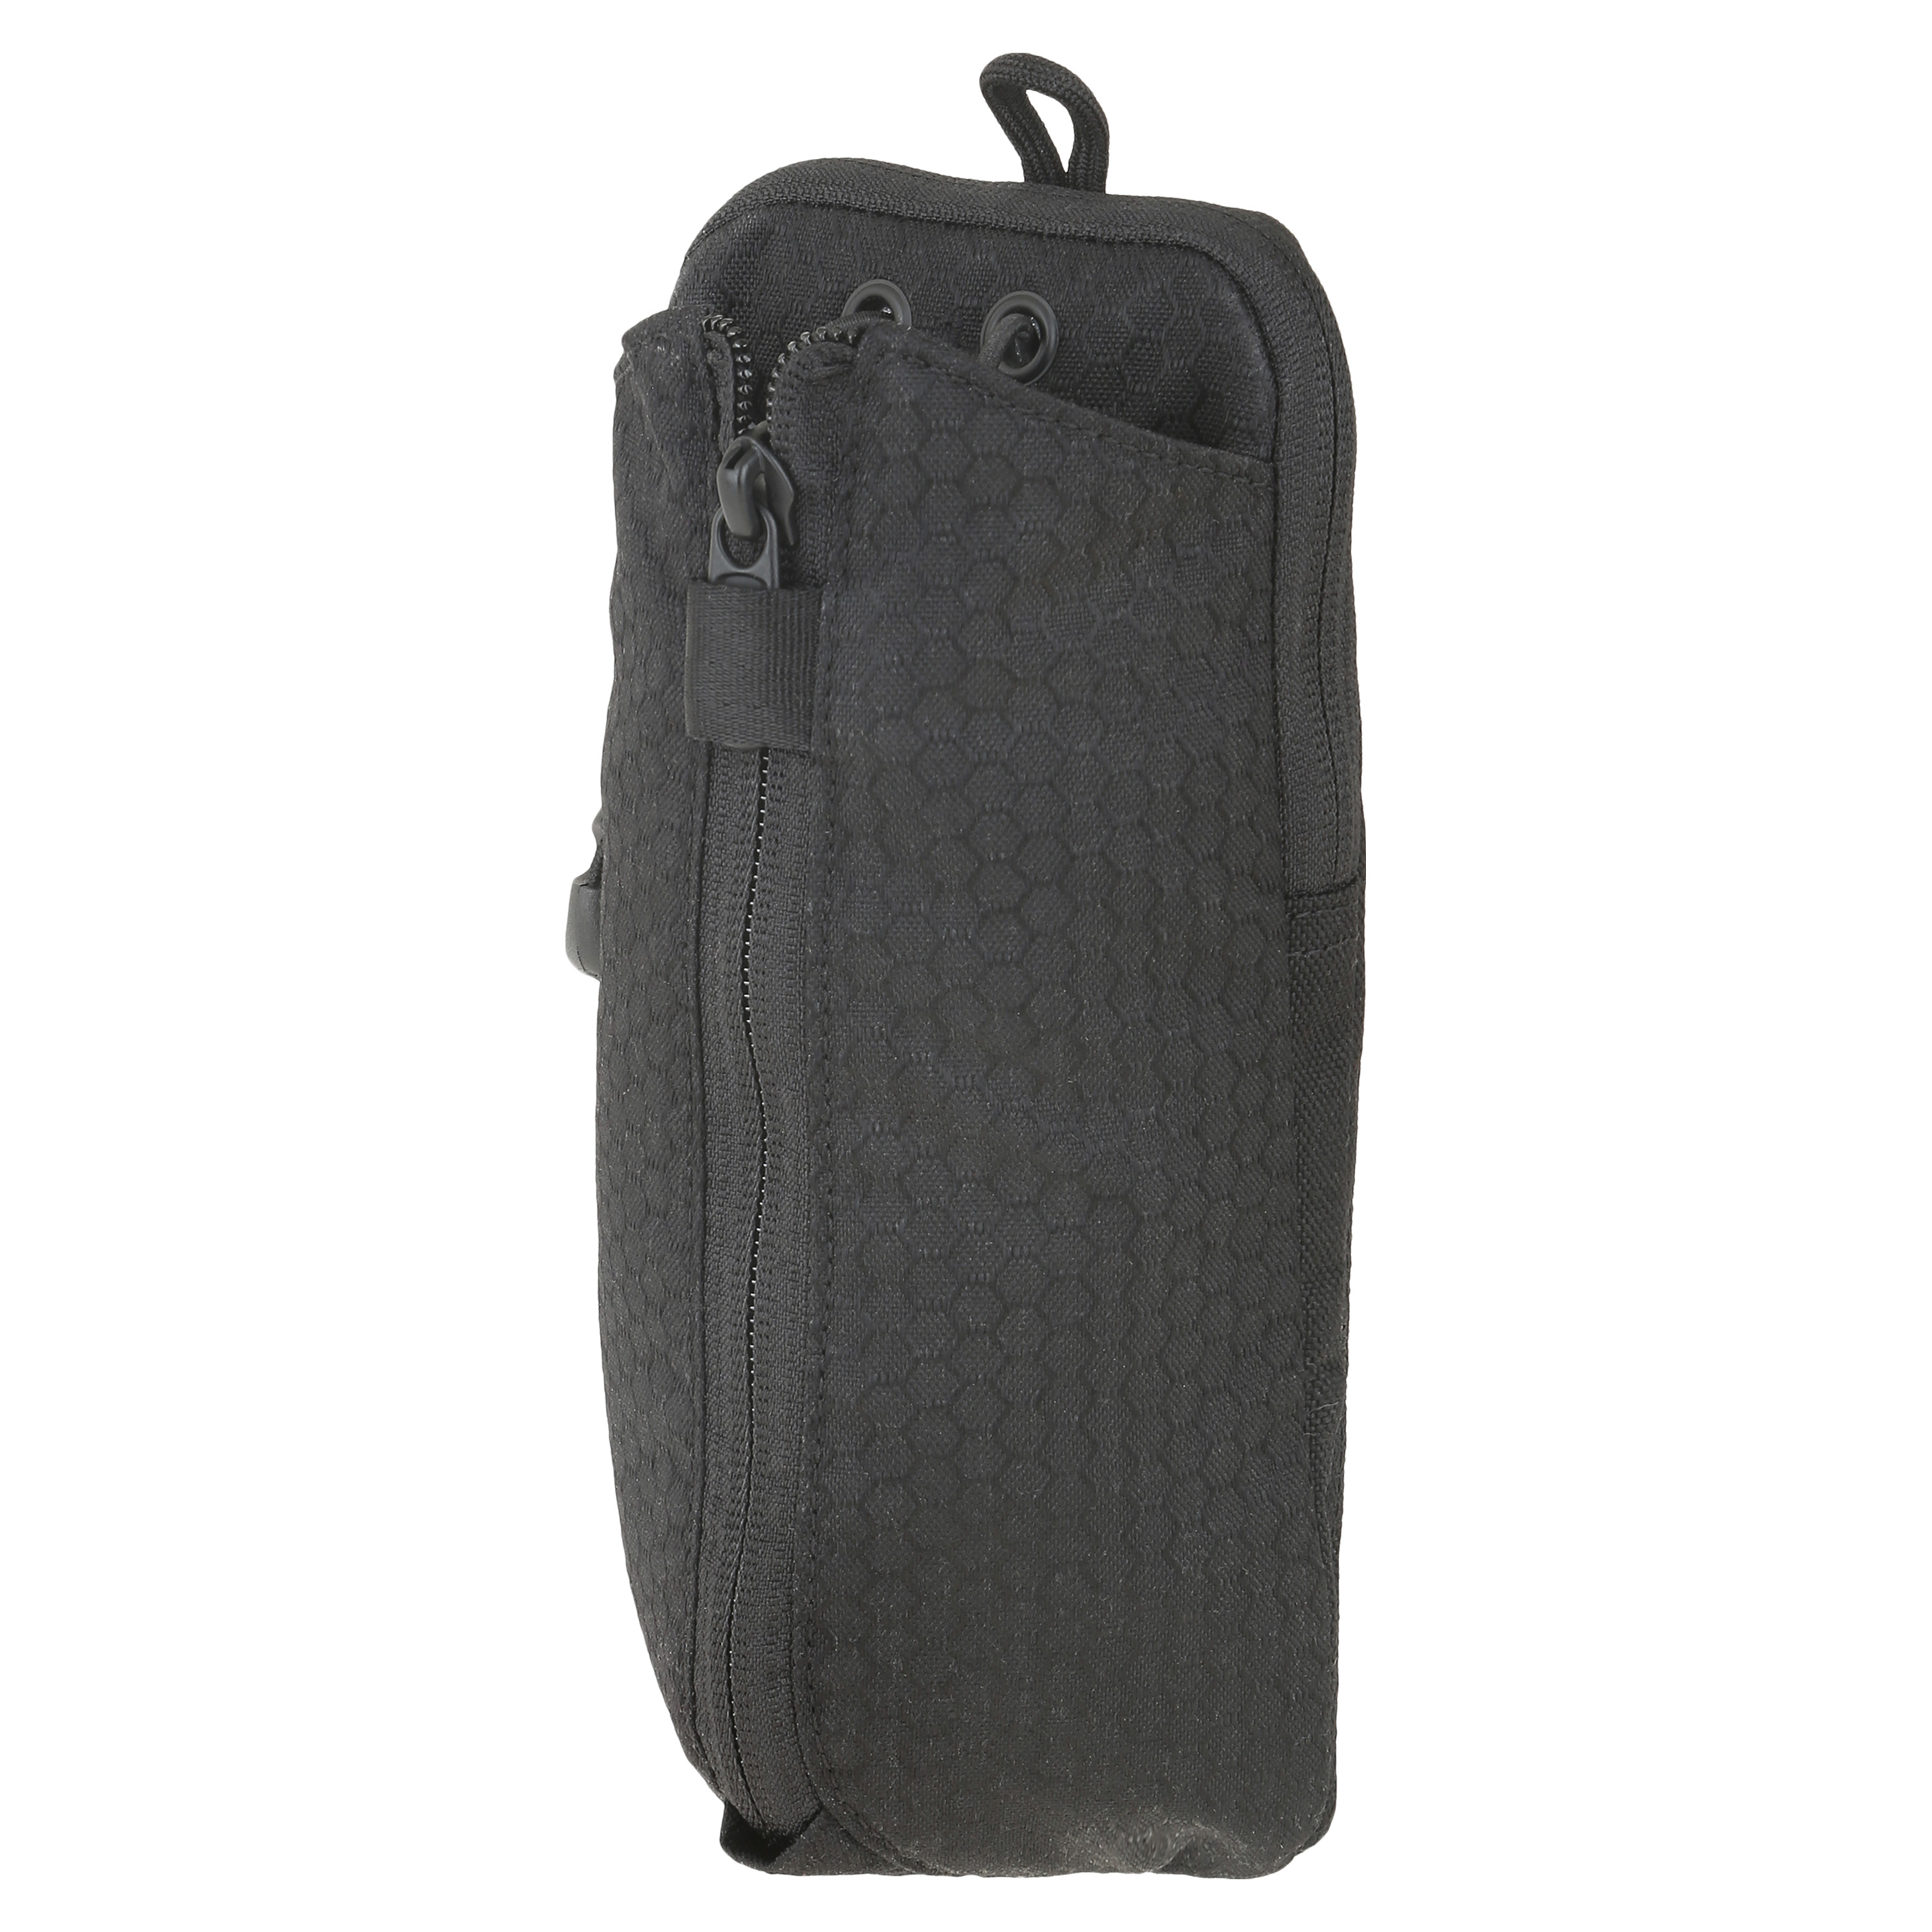 Borsello portabottiglia Expandable Maxpedition nero